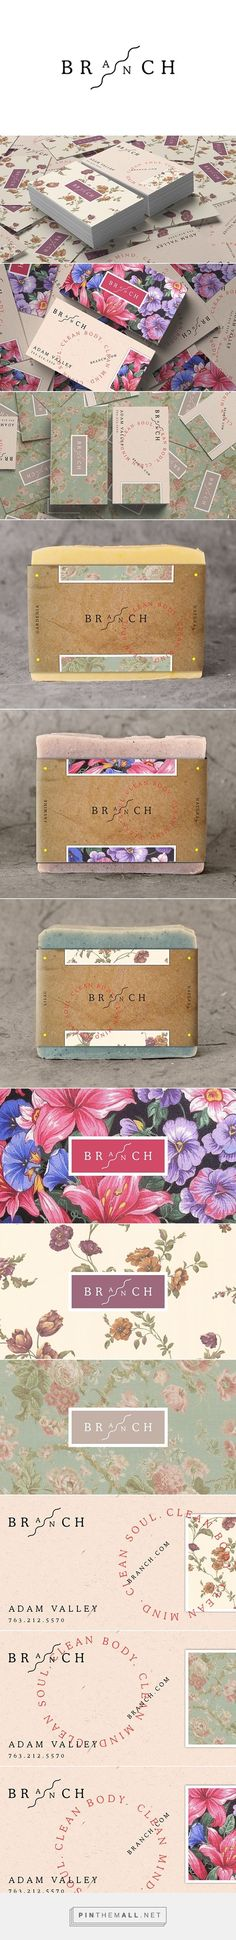 Branch Soap Branding and Packaging by Adam Valley | Fivestar Branding Agency – Design and Branding Agency & Curated Inspiration Gallery